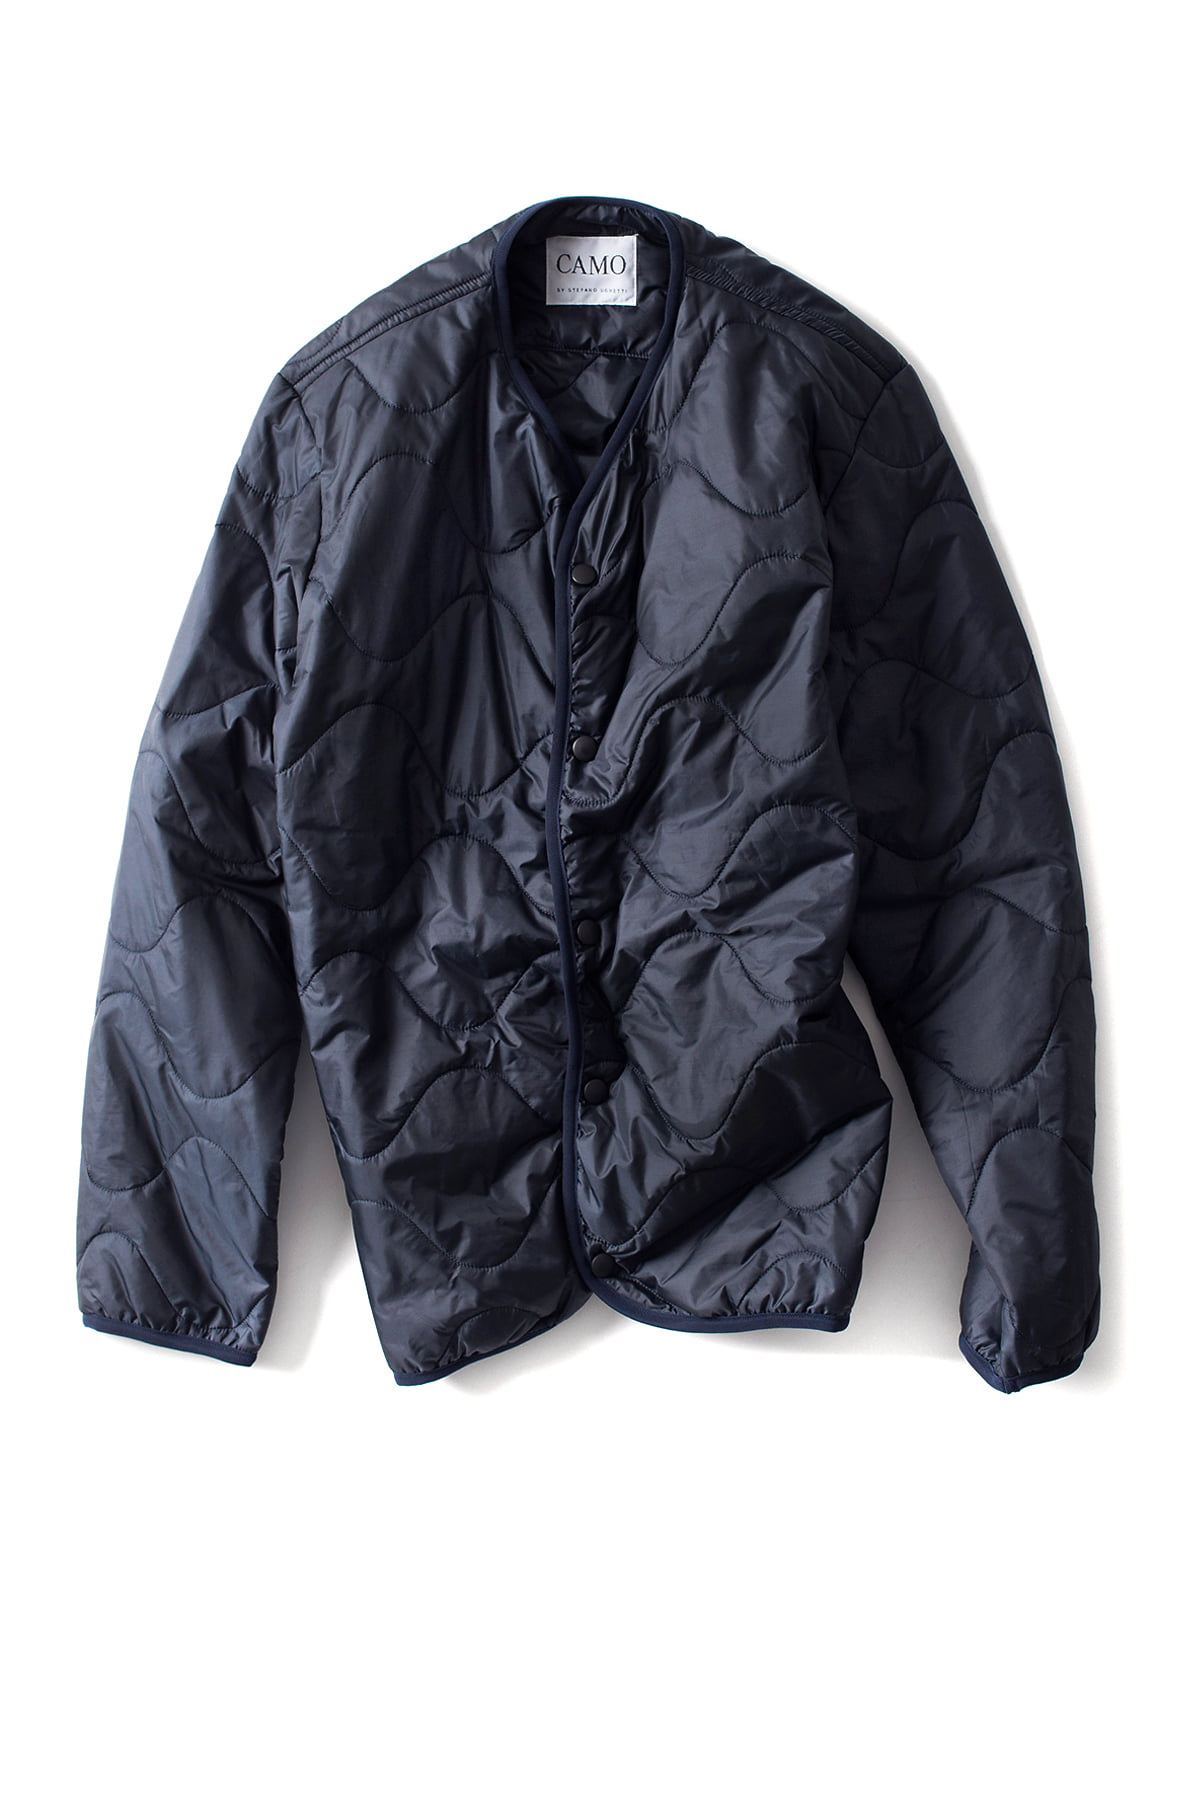 CAMO : WAR ADMIRAL Quilted Waves (Navy)